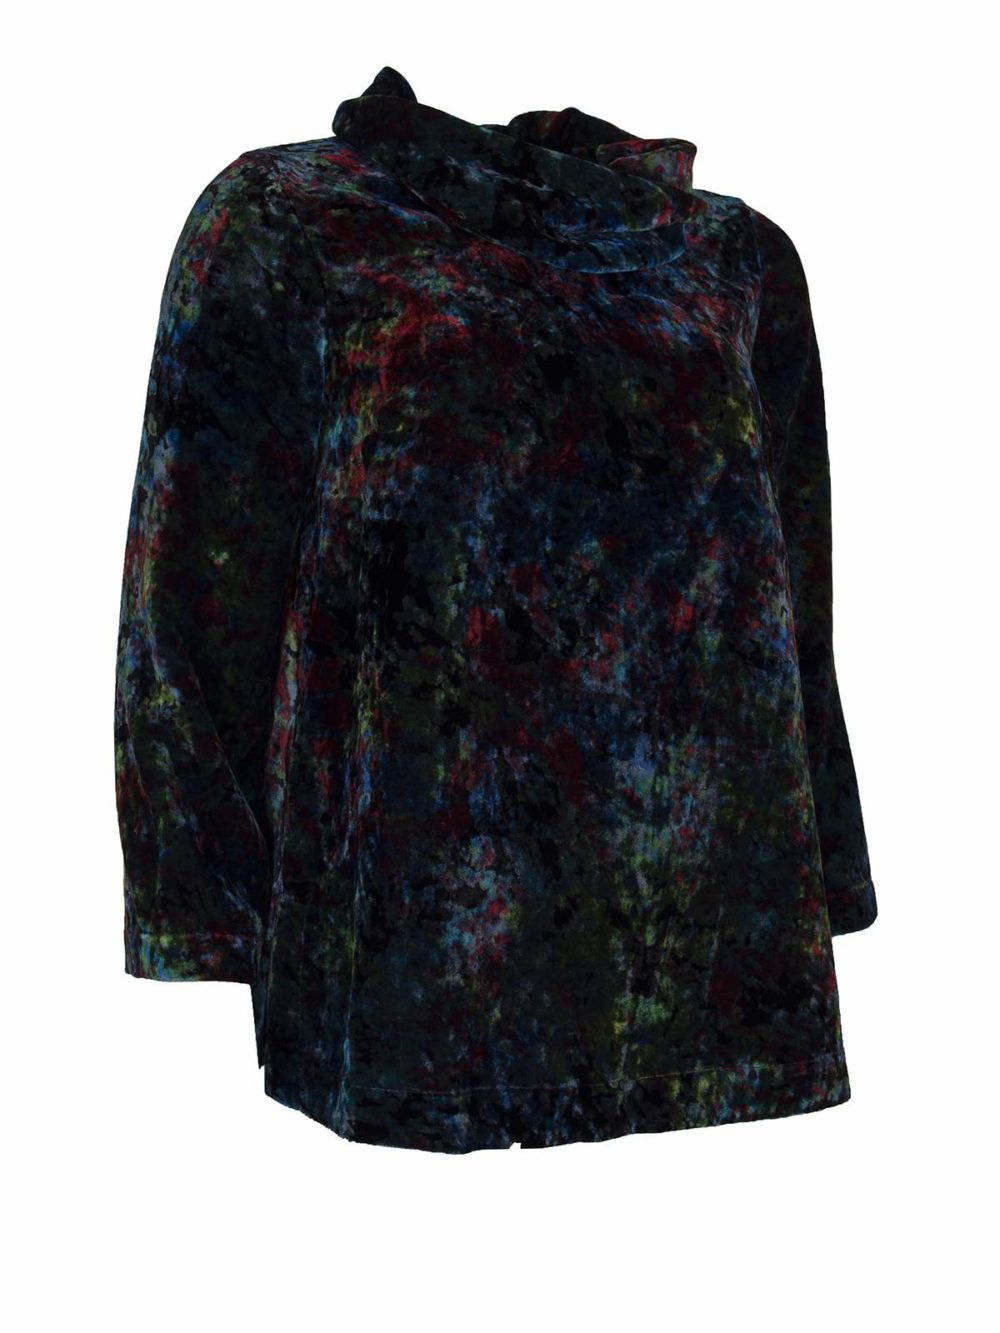 Colourburst Velvet Top